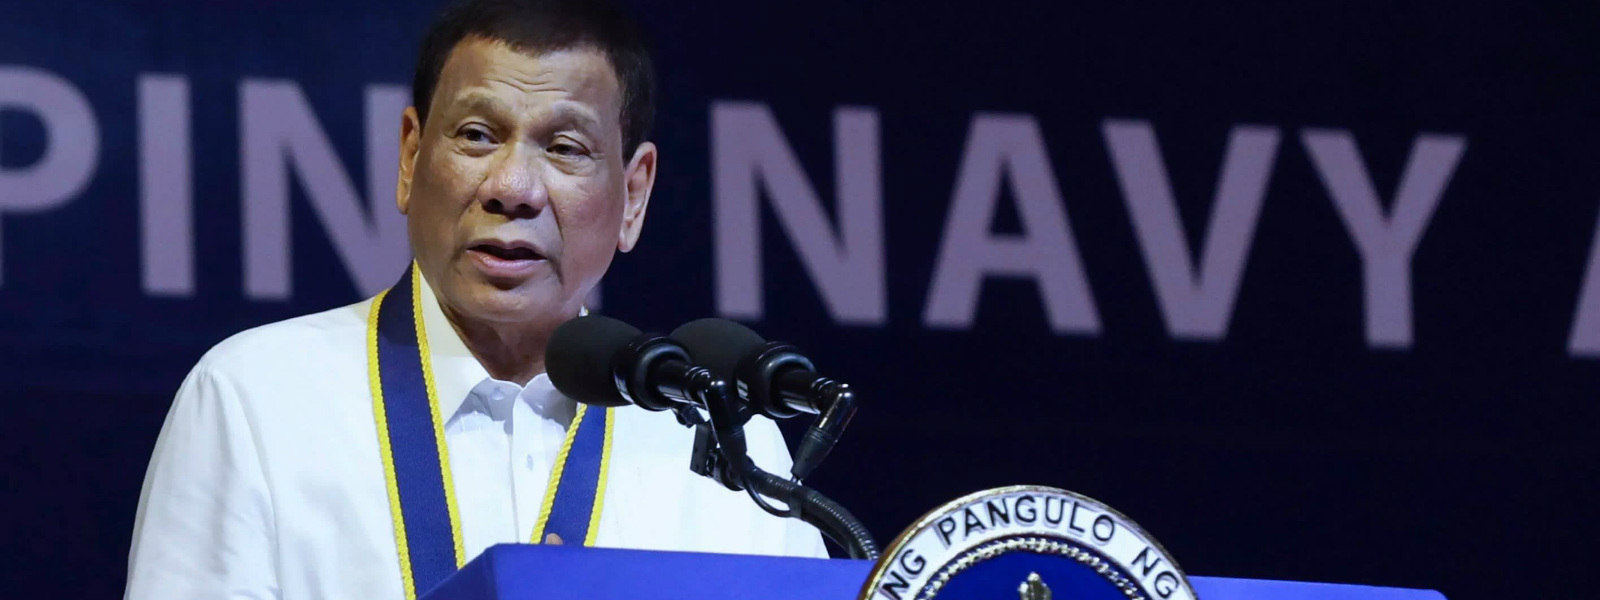 Duterte terminates Philippines – USA troop pact